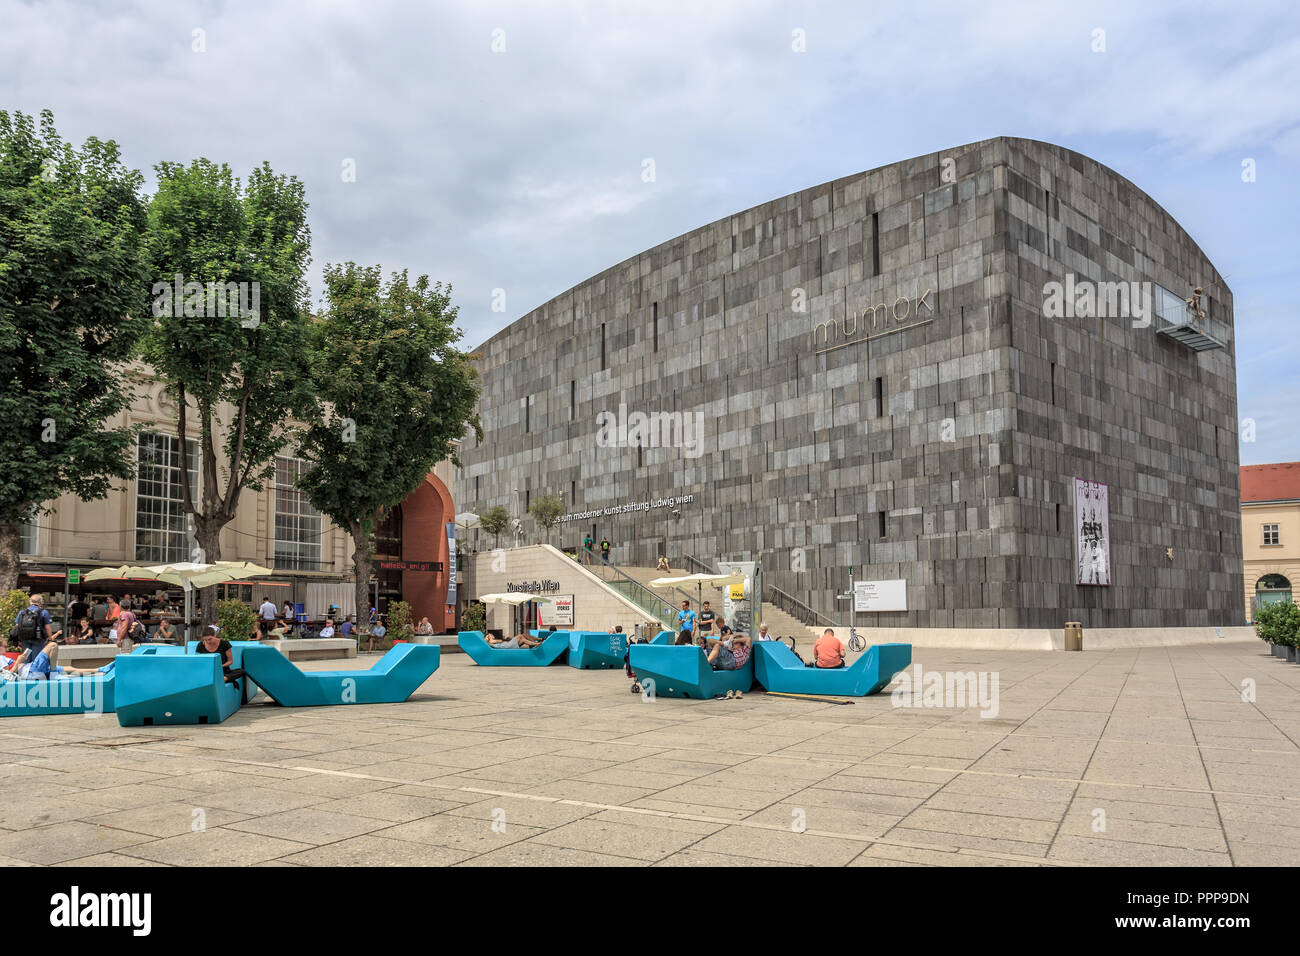 VIENNA, AUSTRIA - JUNE 27, 2015: Mumok (Museum Moderner Kunst) Museum of Modern Art is a museum in the Museumsquartier in Vienna that has a collection - Stock Image